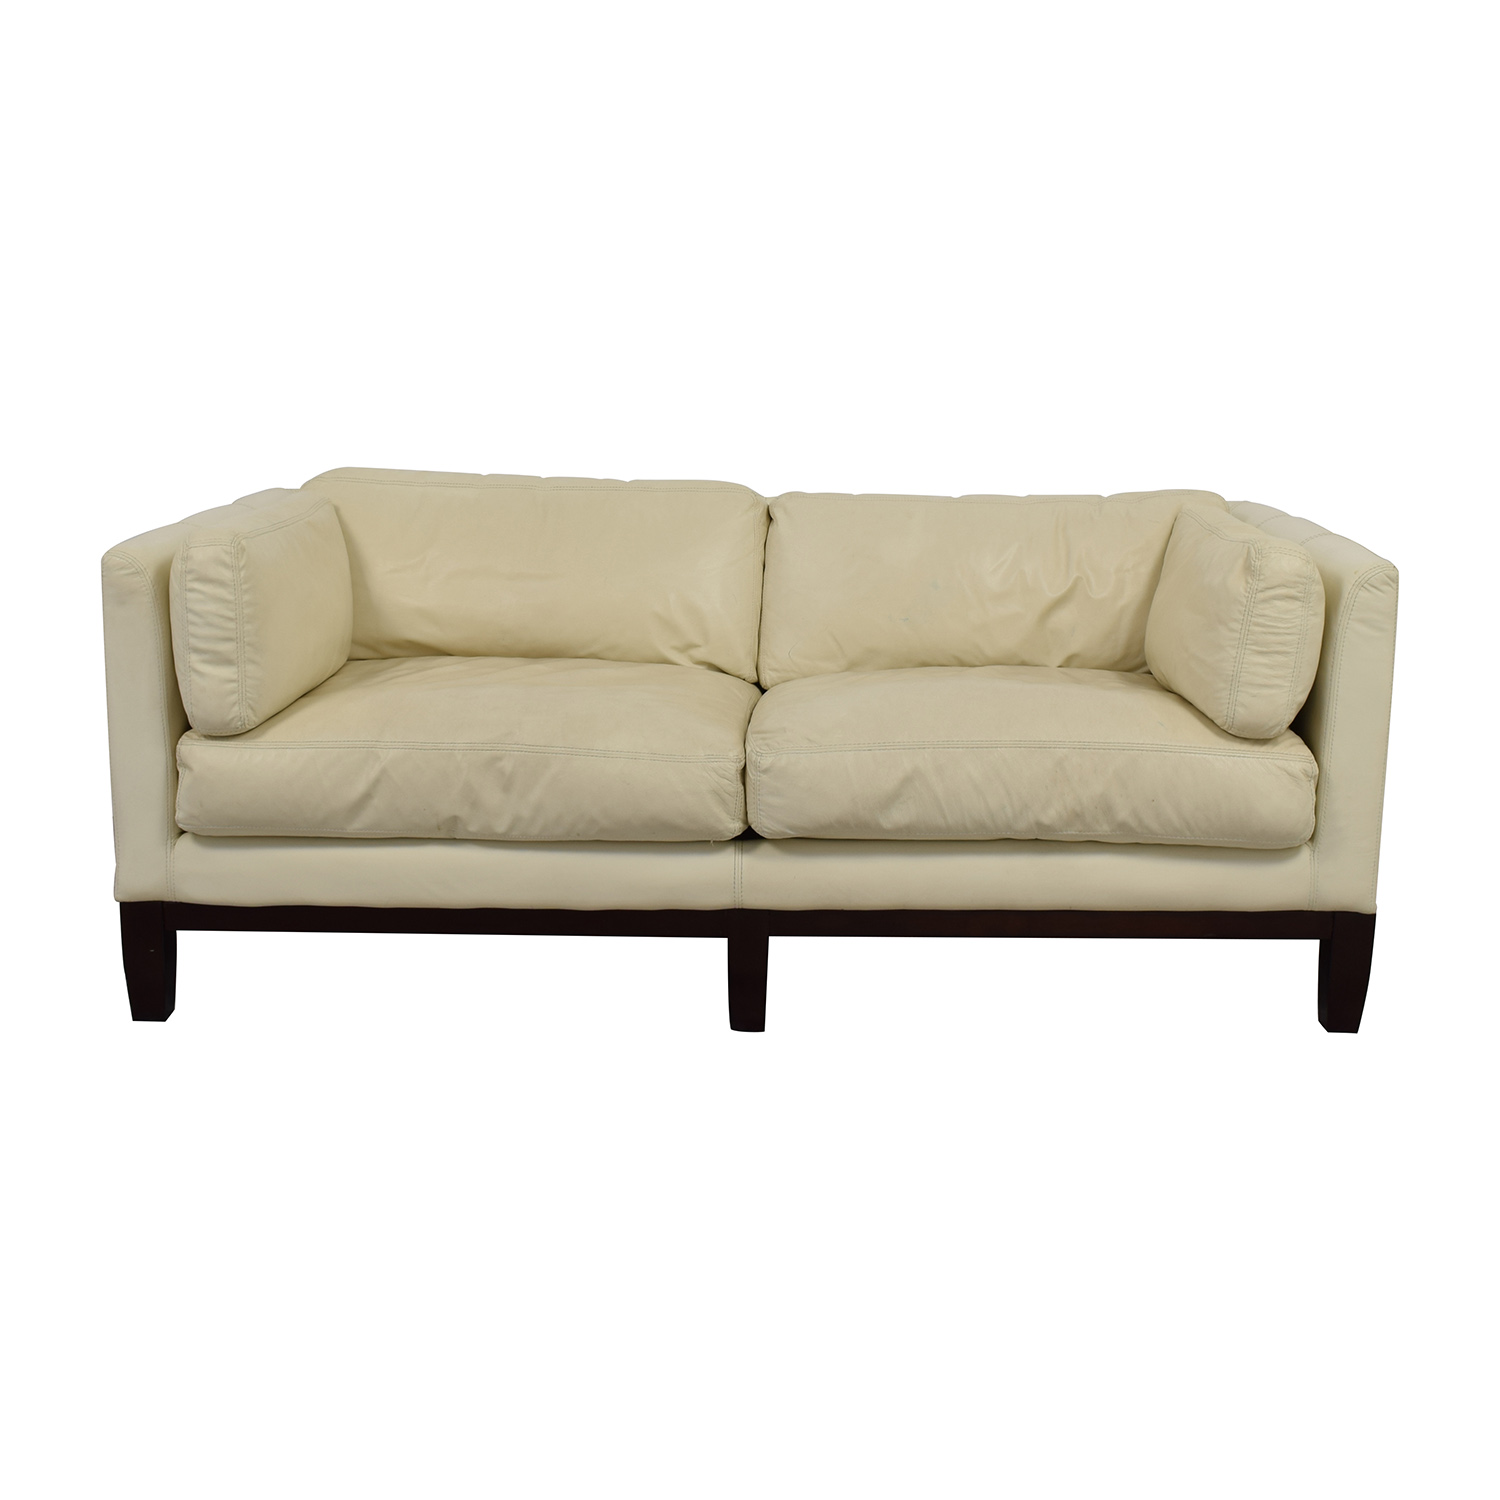 Awesome 72 Sofa Marmsweb Marmsweb